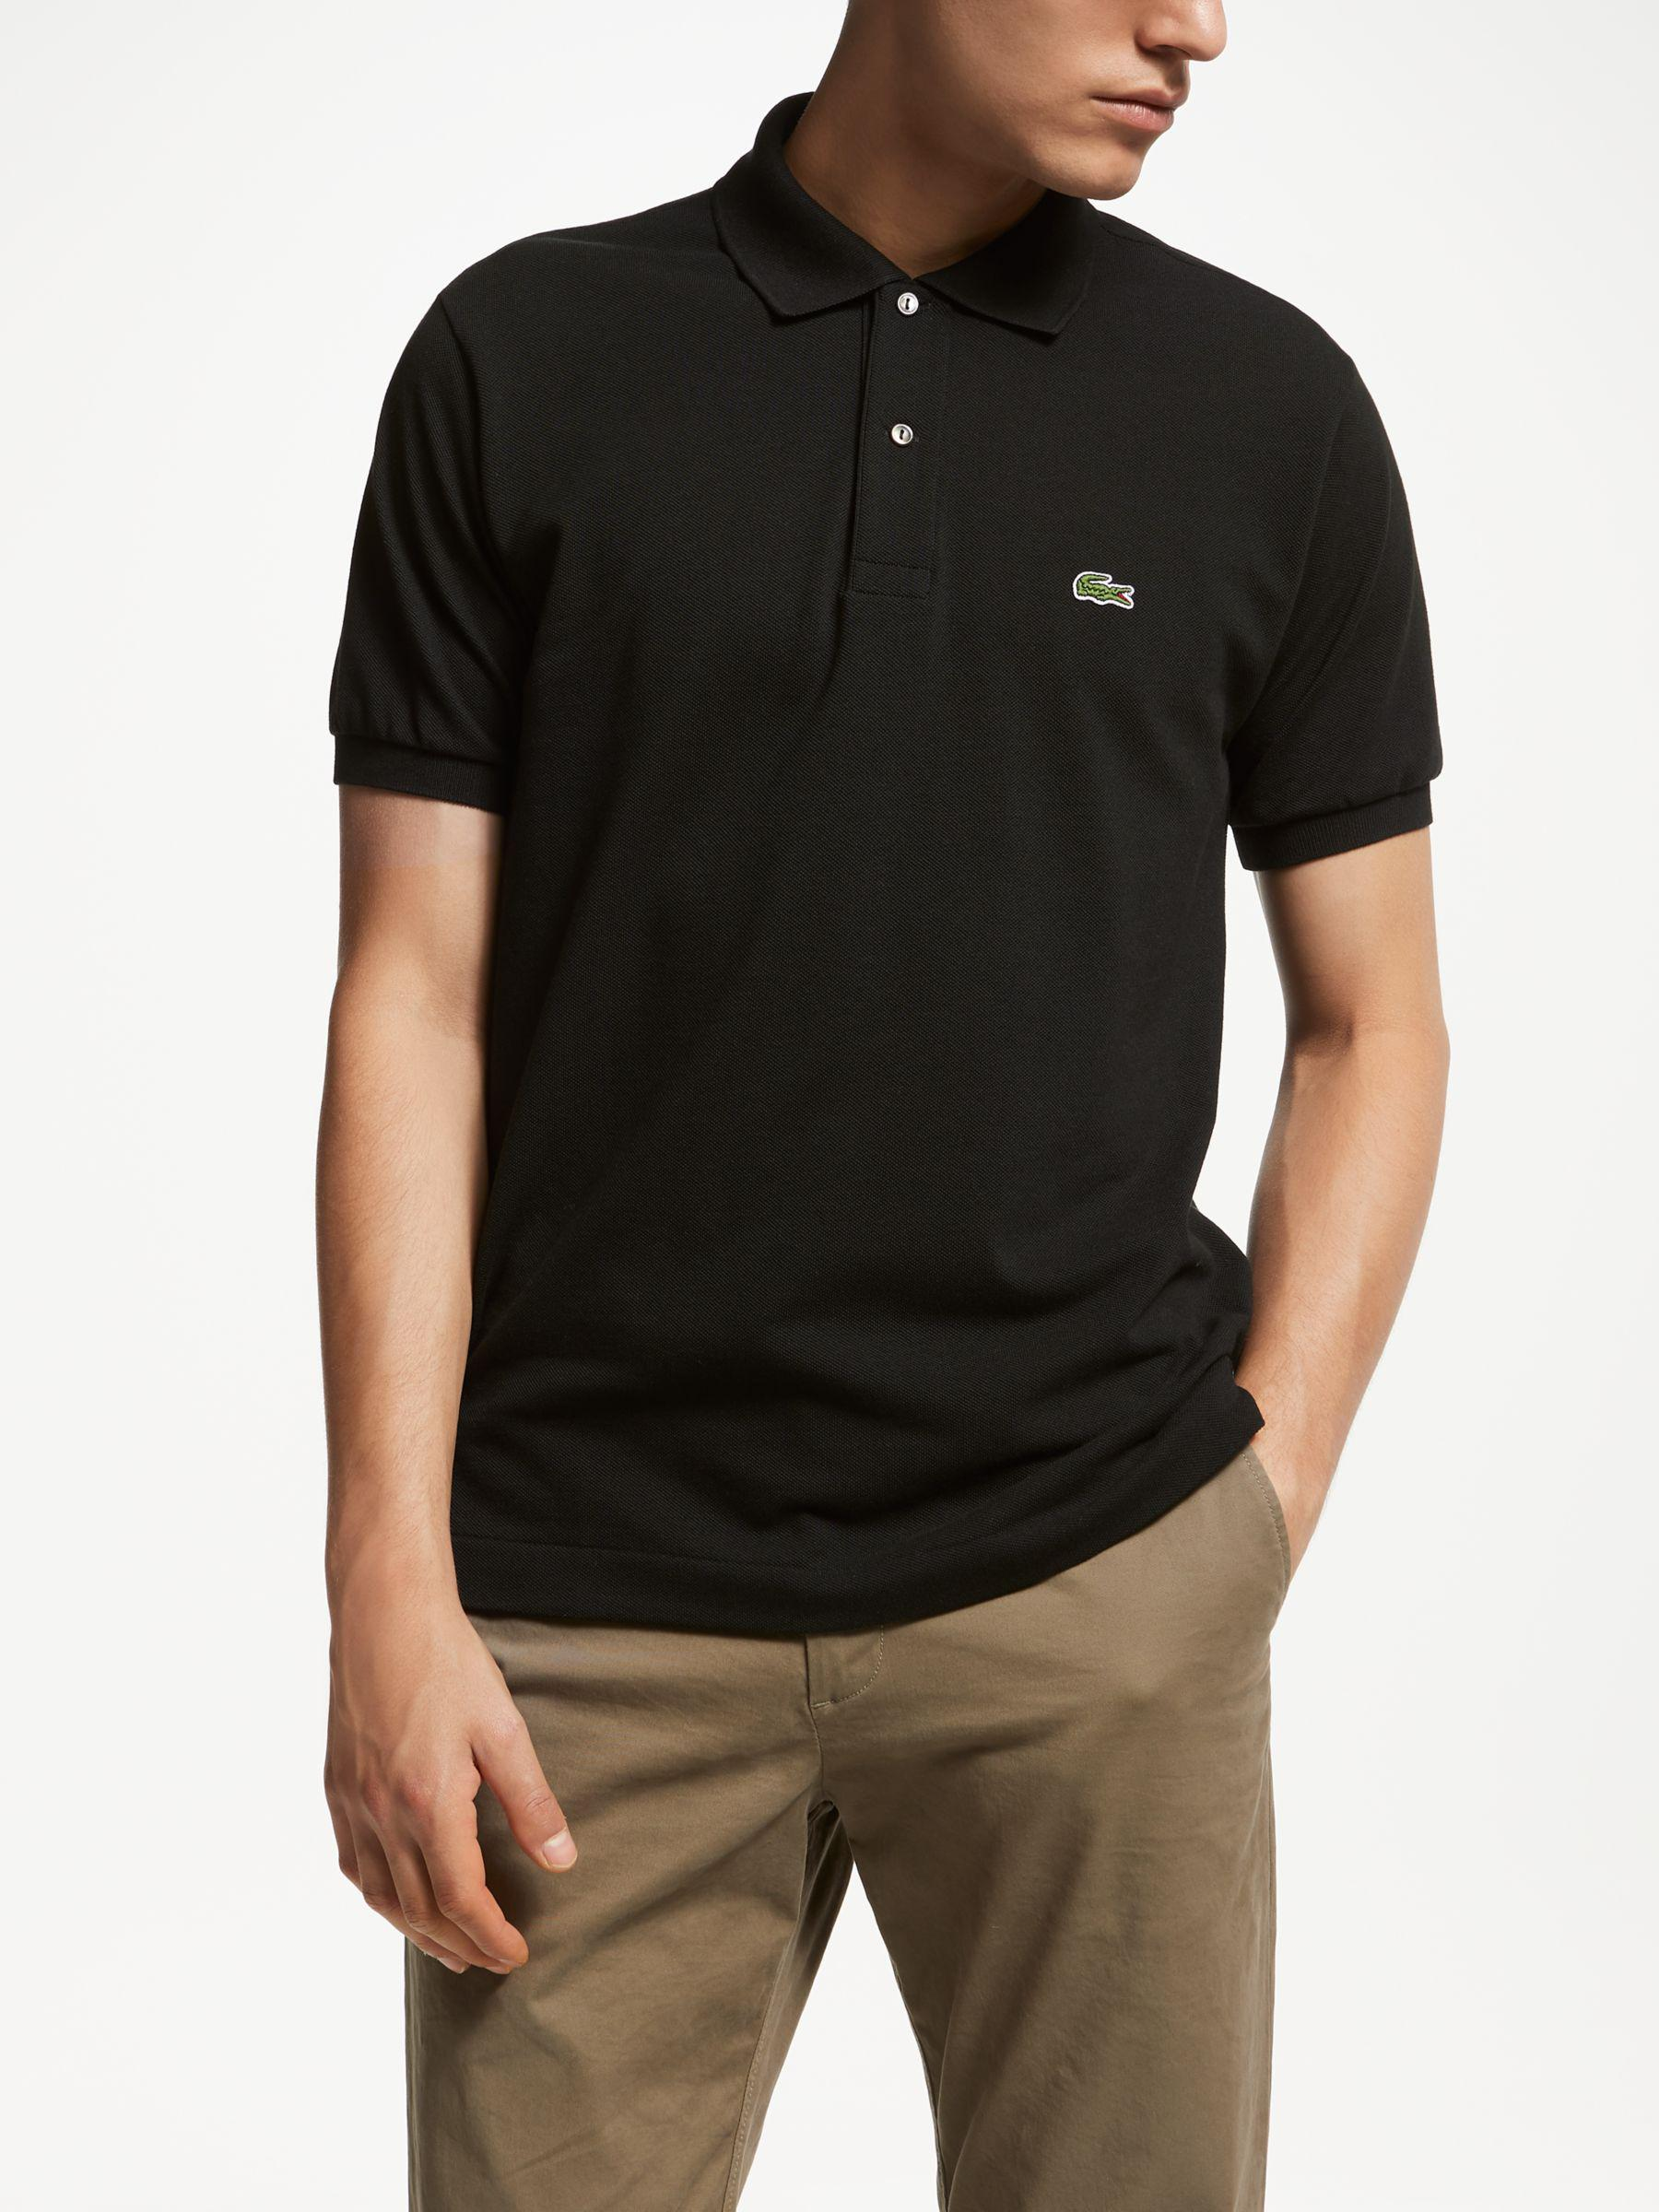 1104b431 Lacoste L.12.12 Classic Regular Fit Short Sleeve Polo Shirt in Black ...